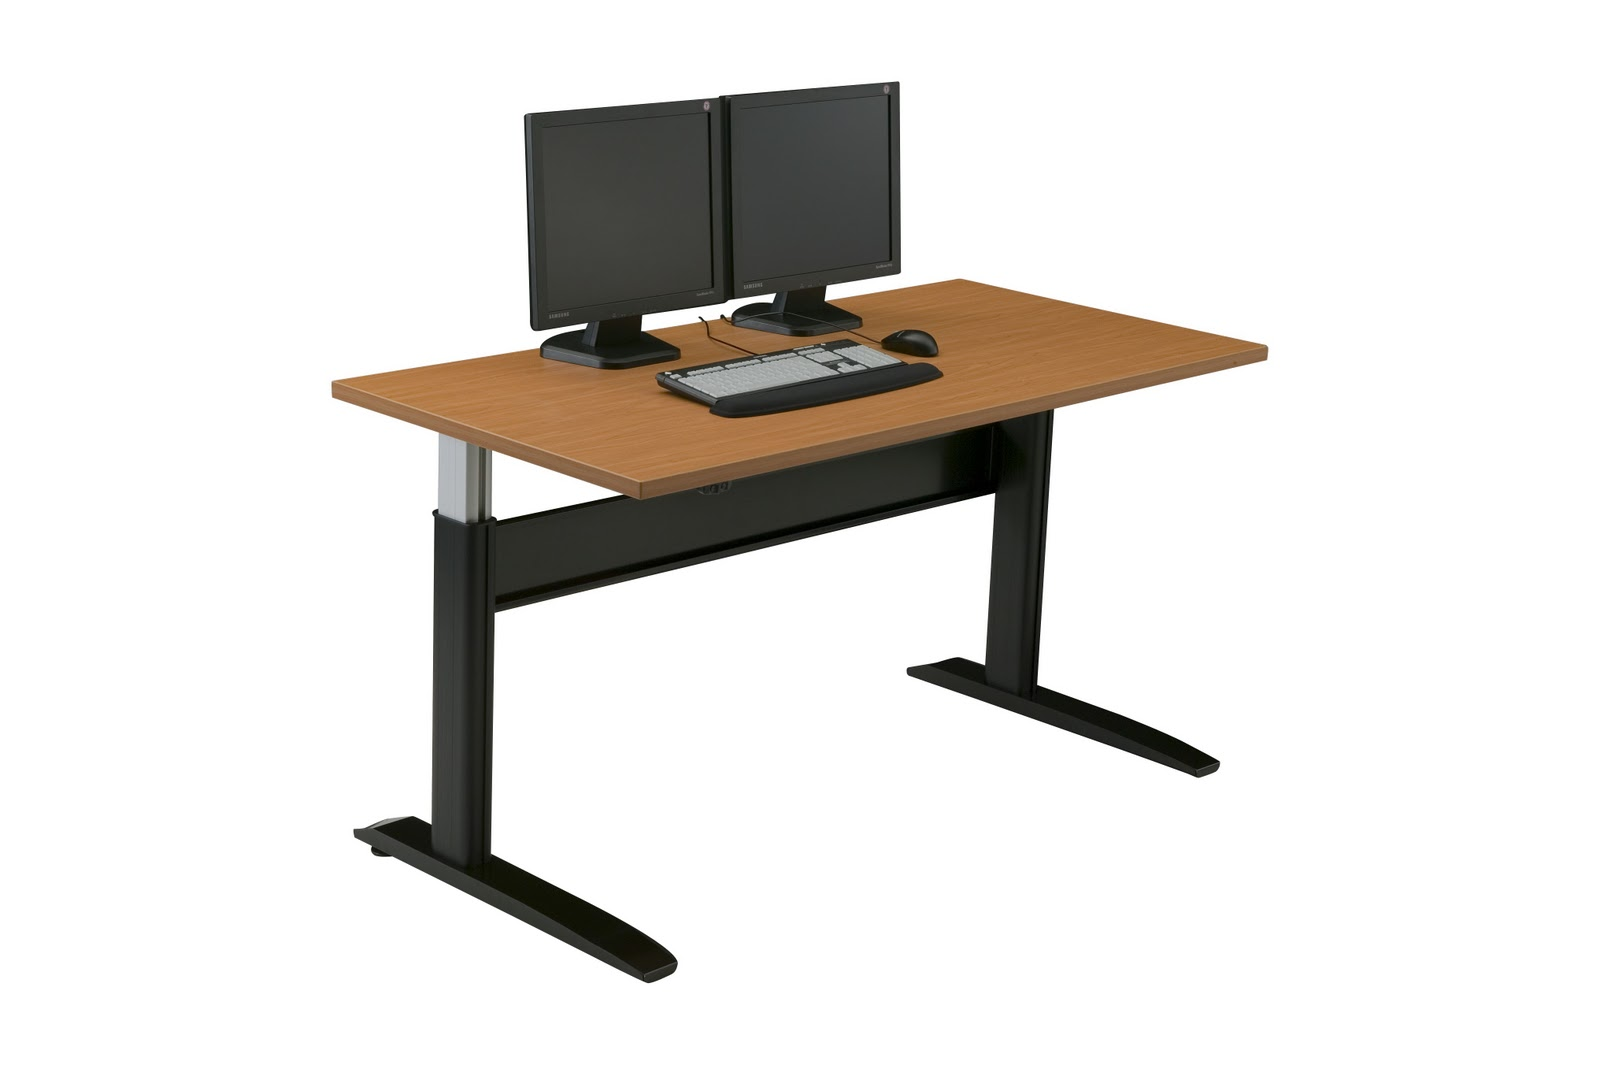 Office furniture standing desk images for Office chairs for standing desks